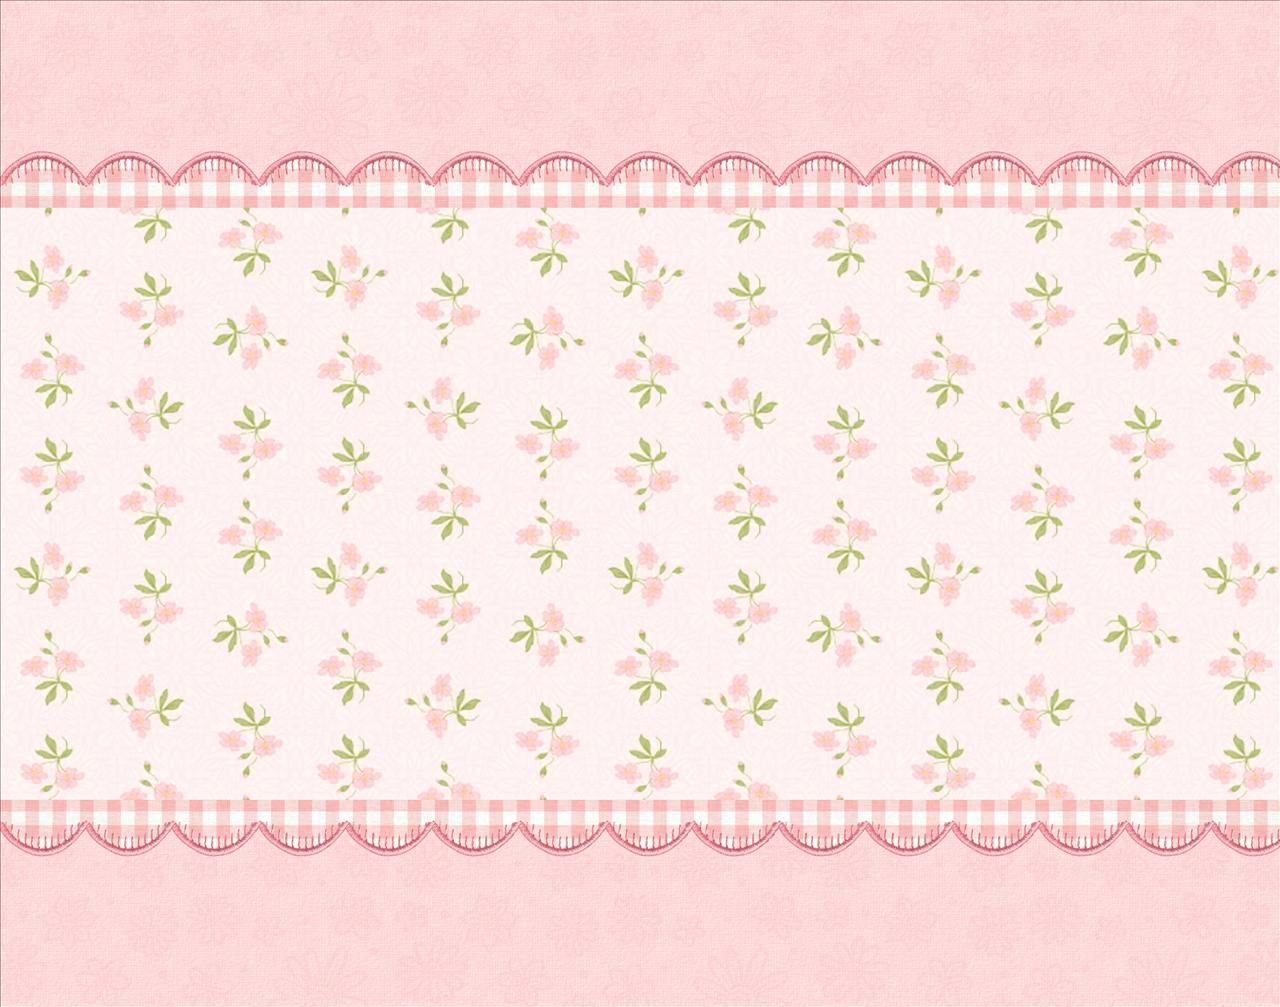 Picaboo Free Backgrounds - View Entry | artes | Pinterest | Tapeten ...